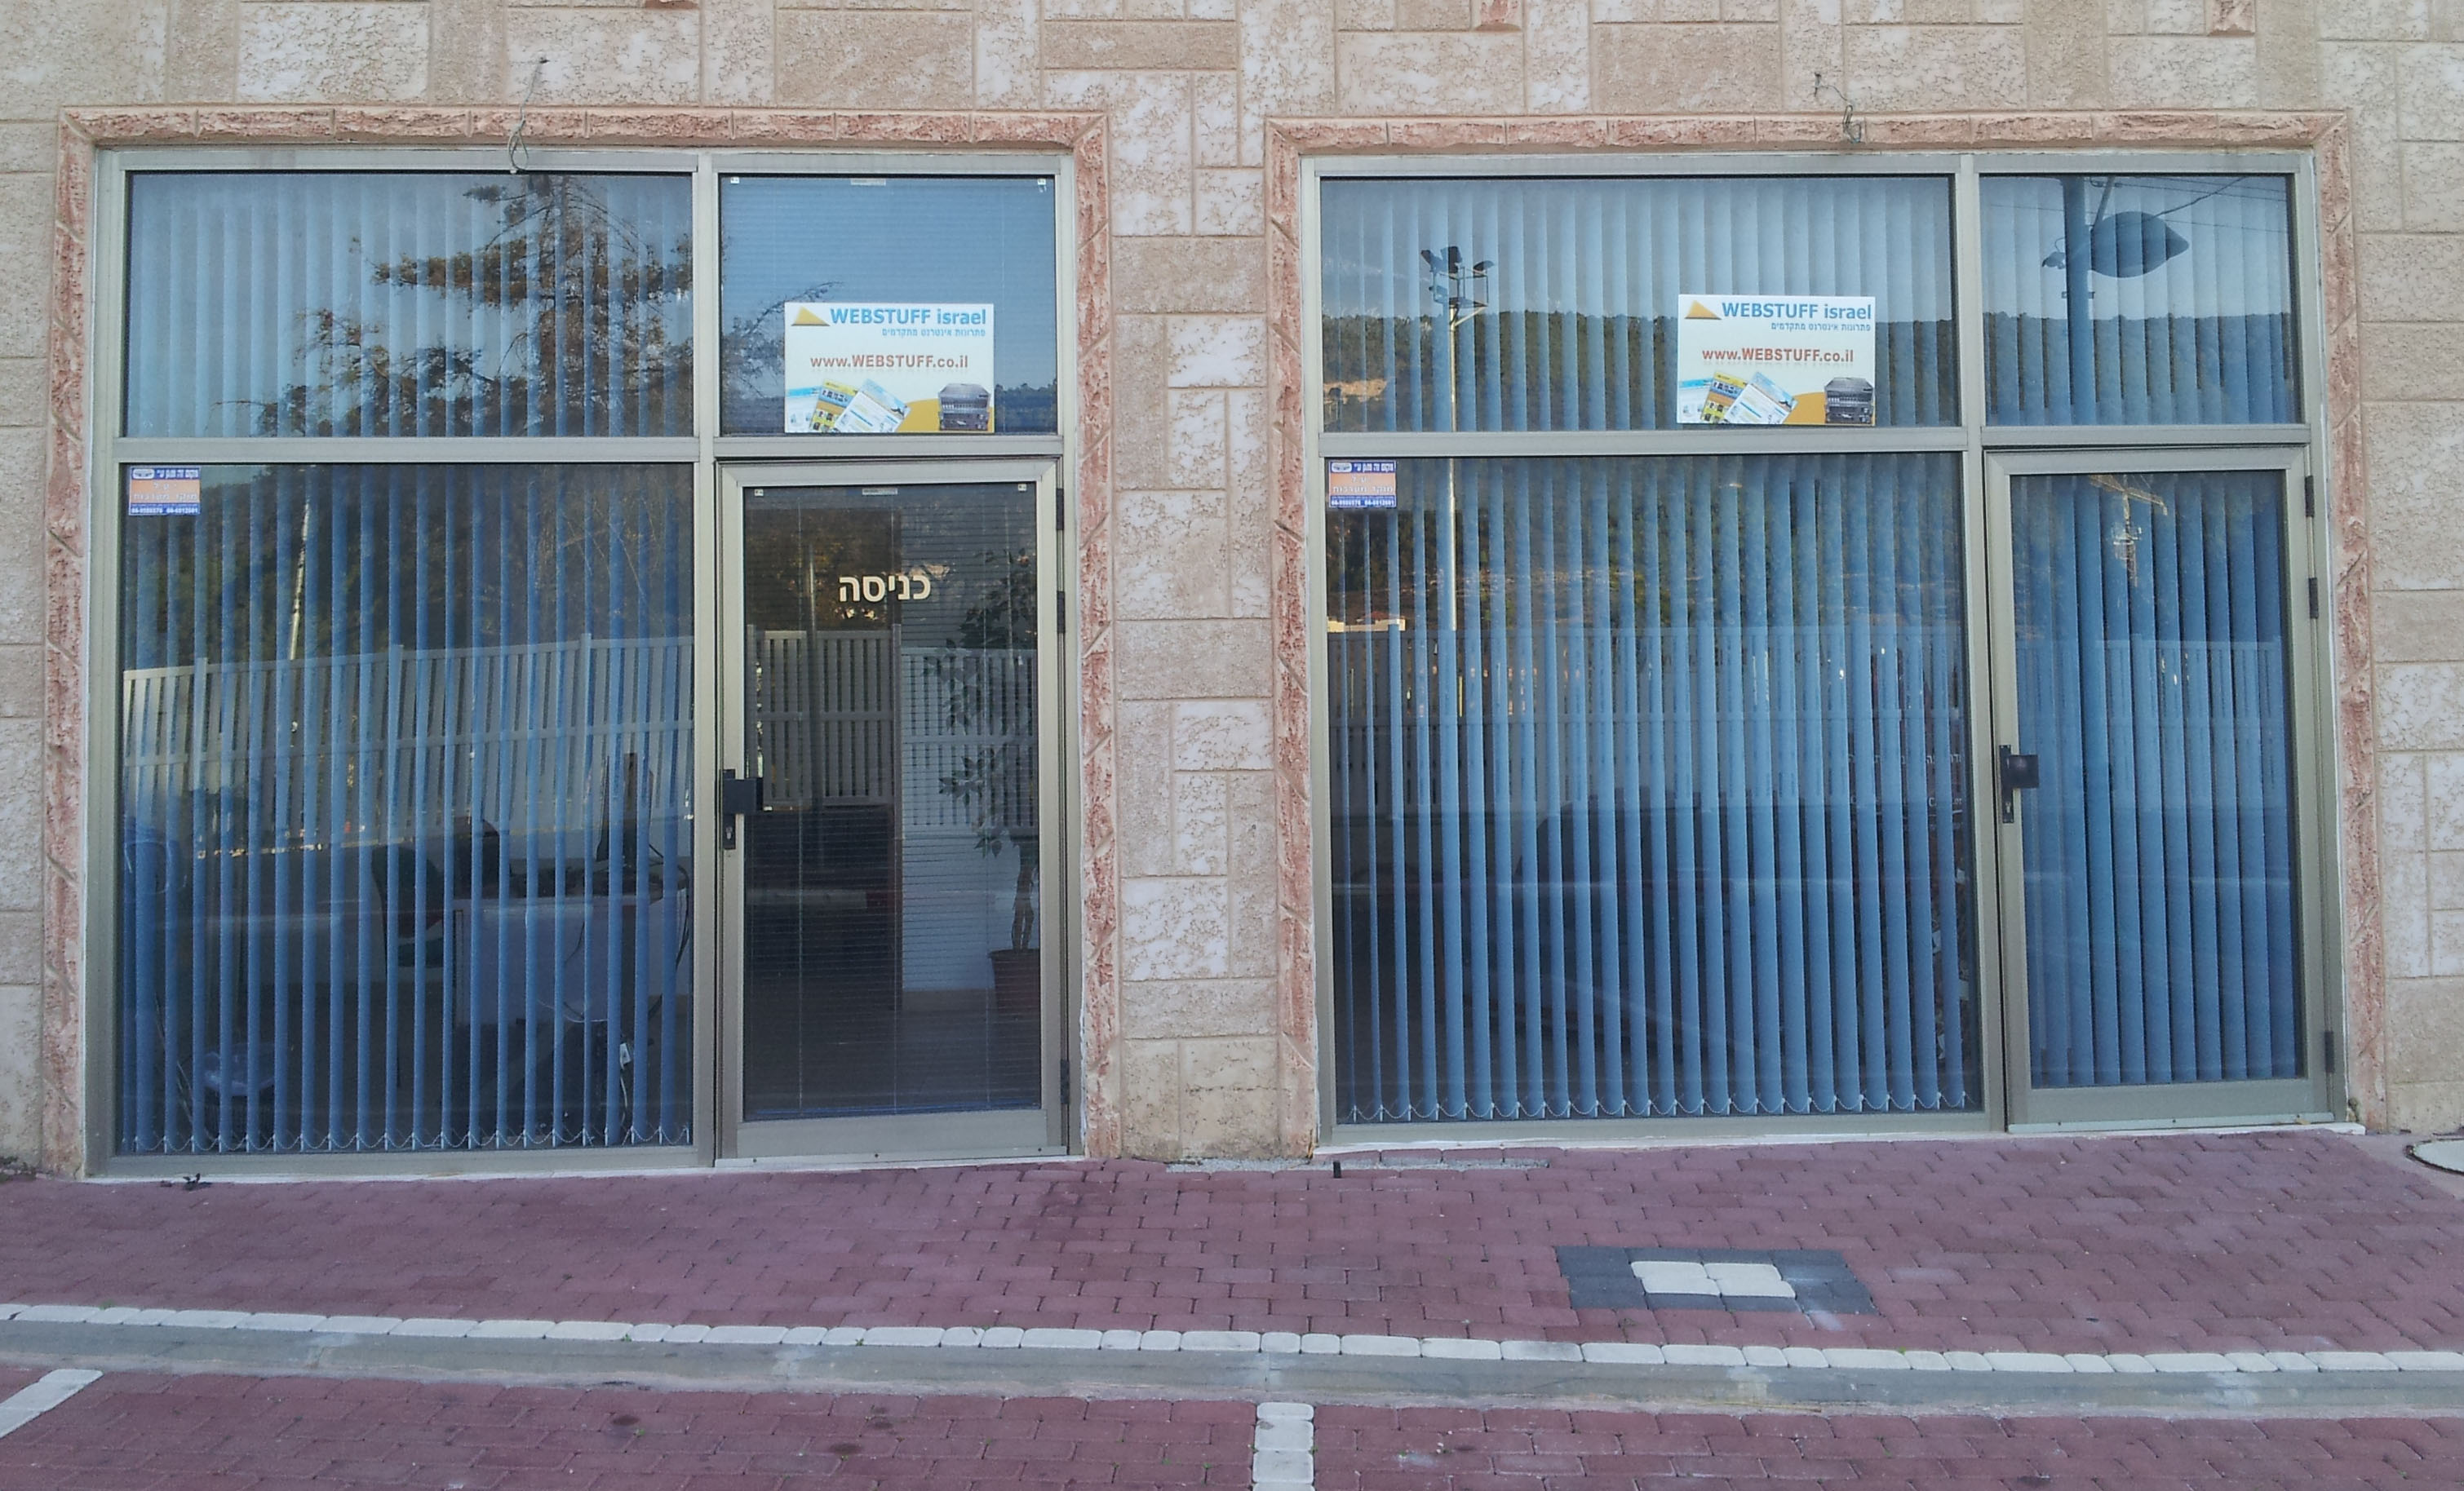 WEBSTUFF Israel offices